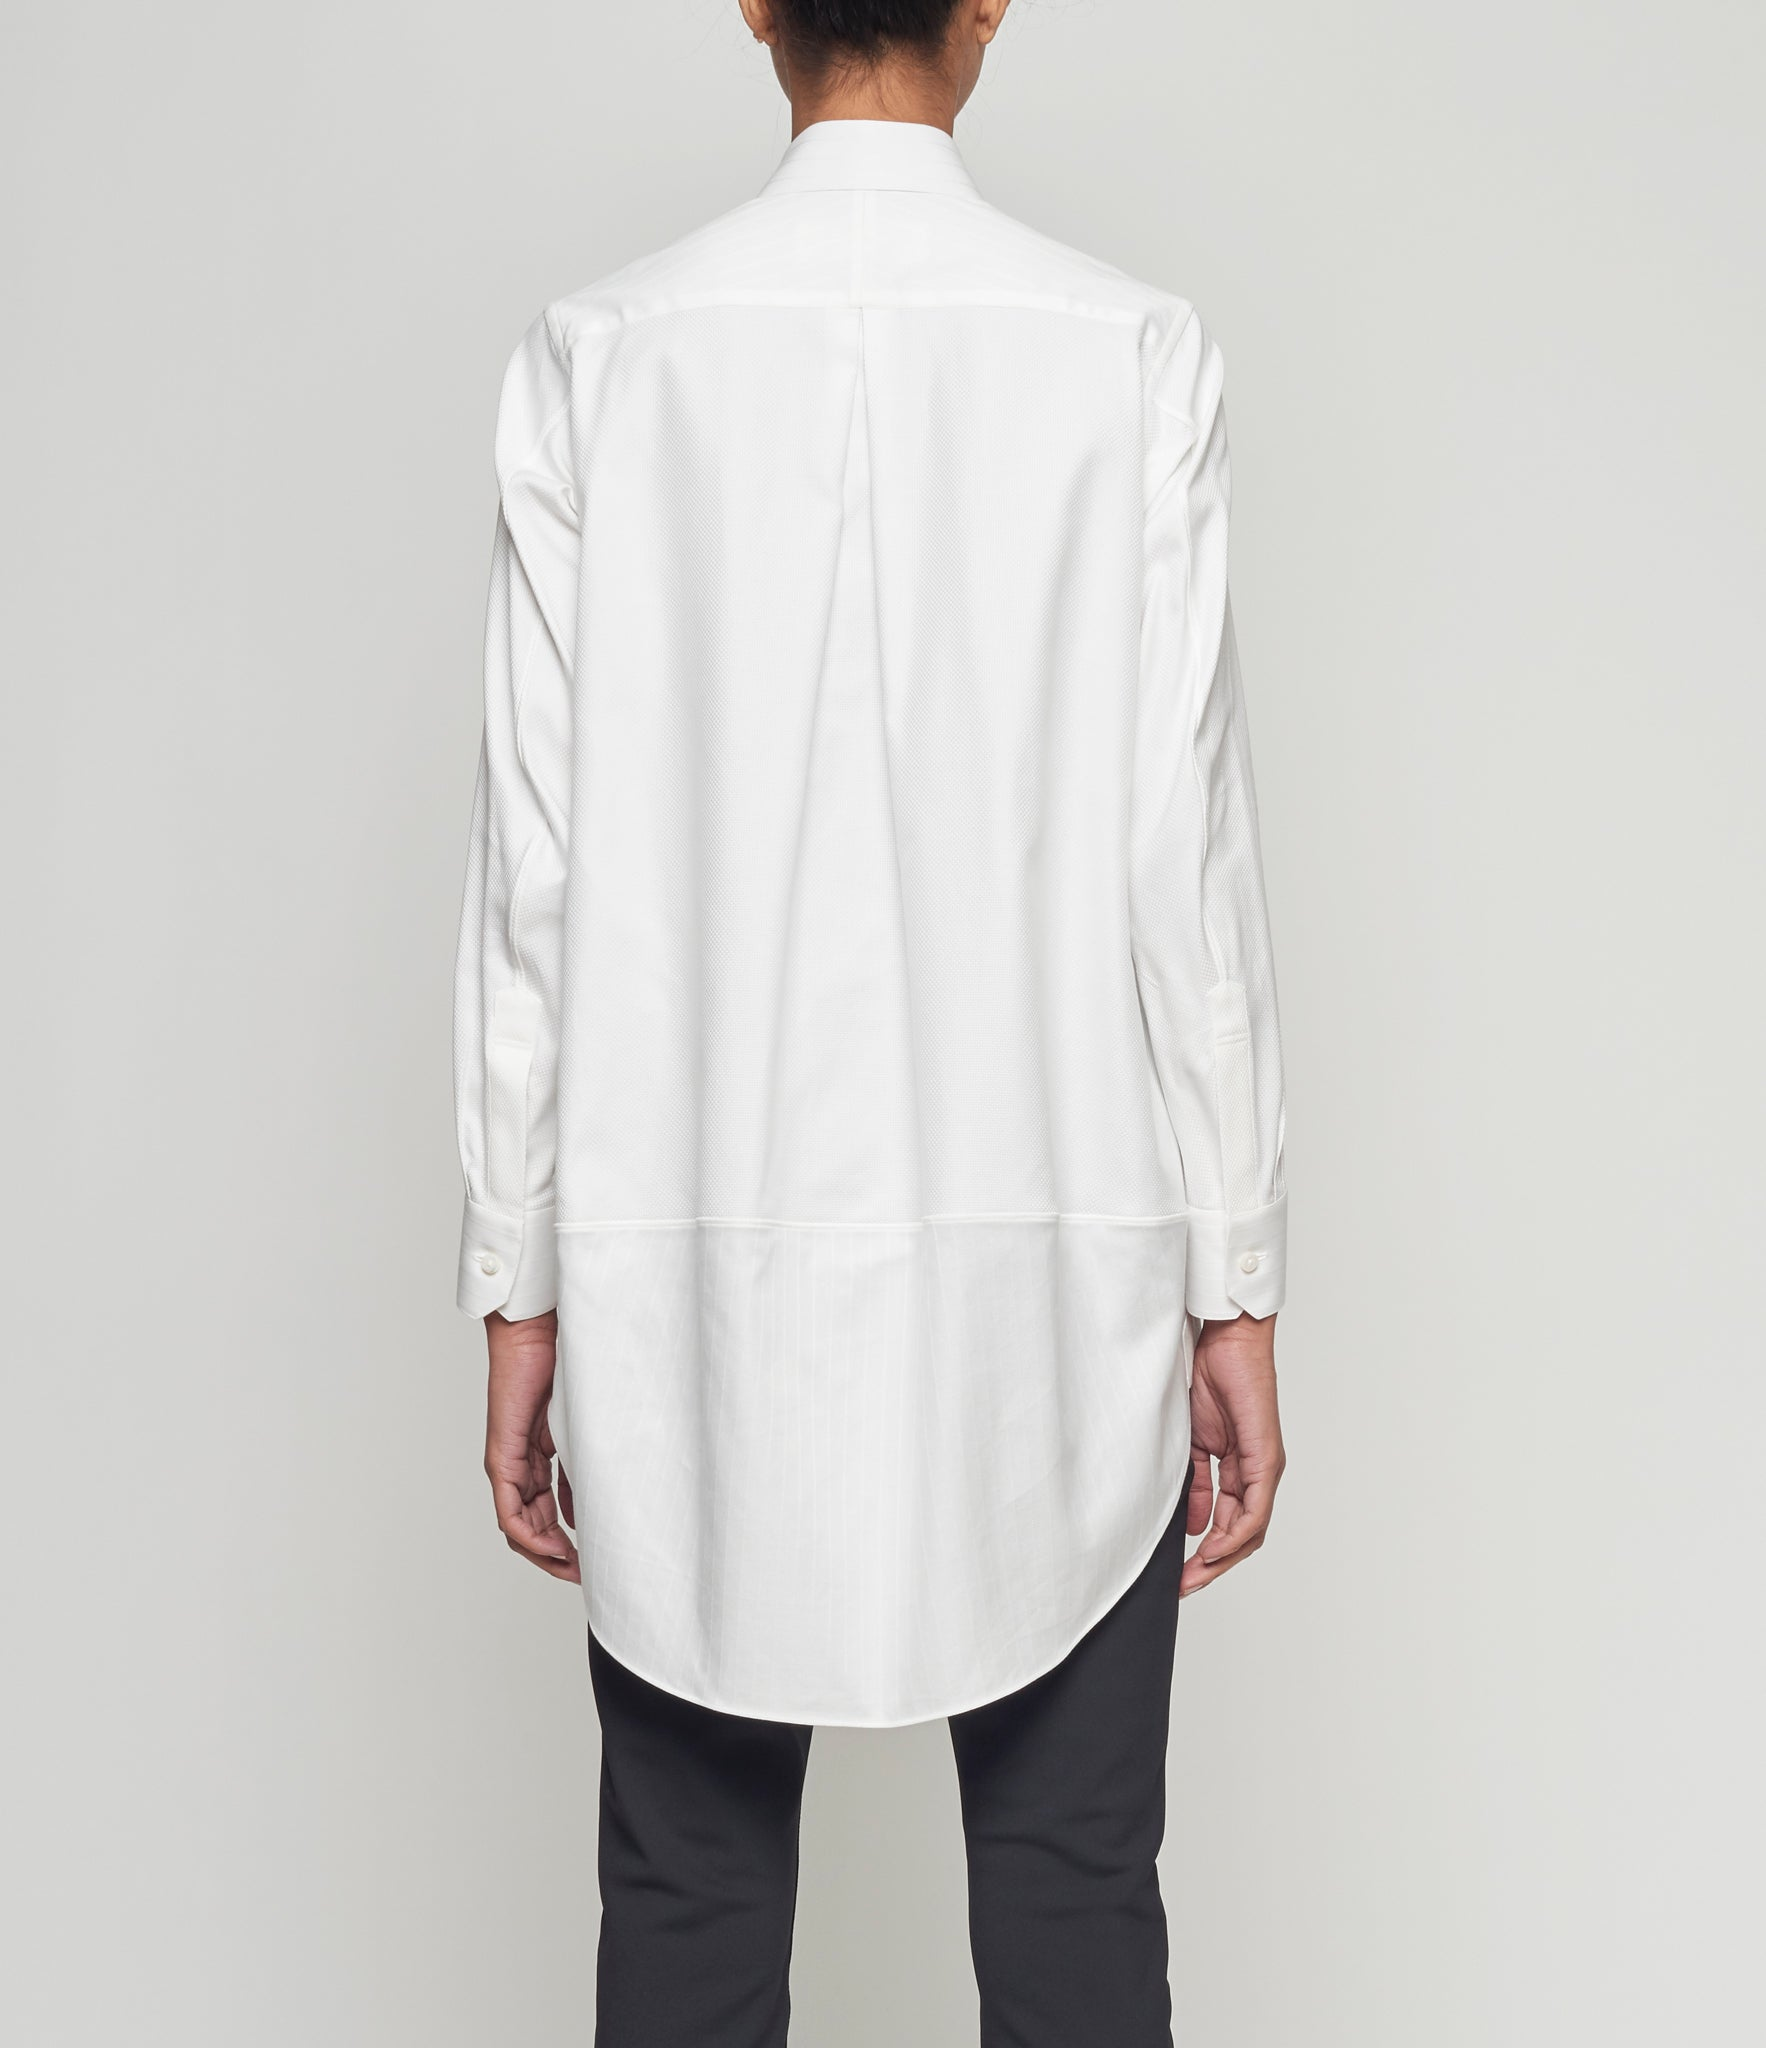 Shiro Sakai Curved Back White Shirt